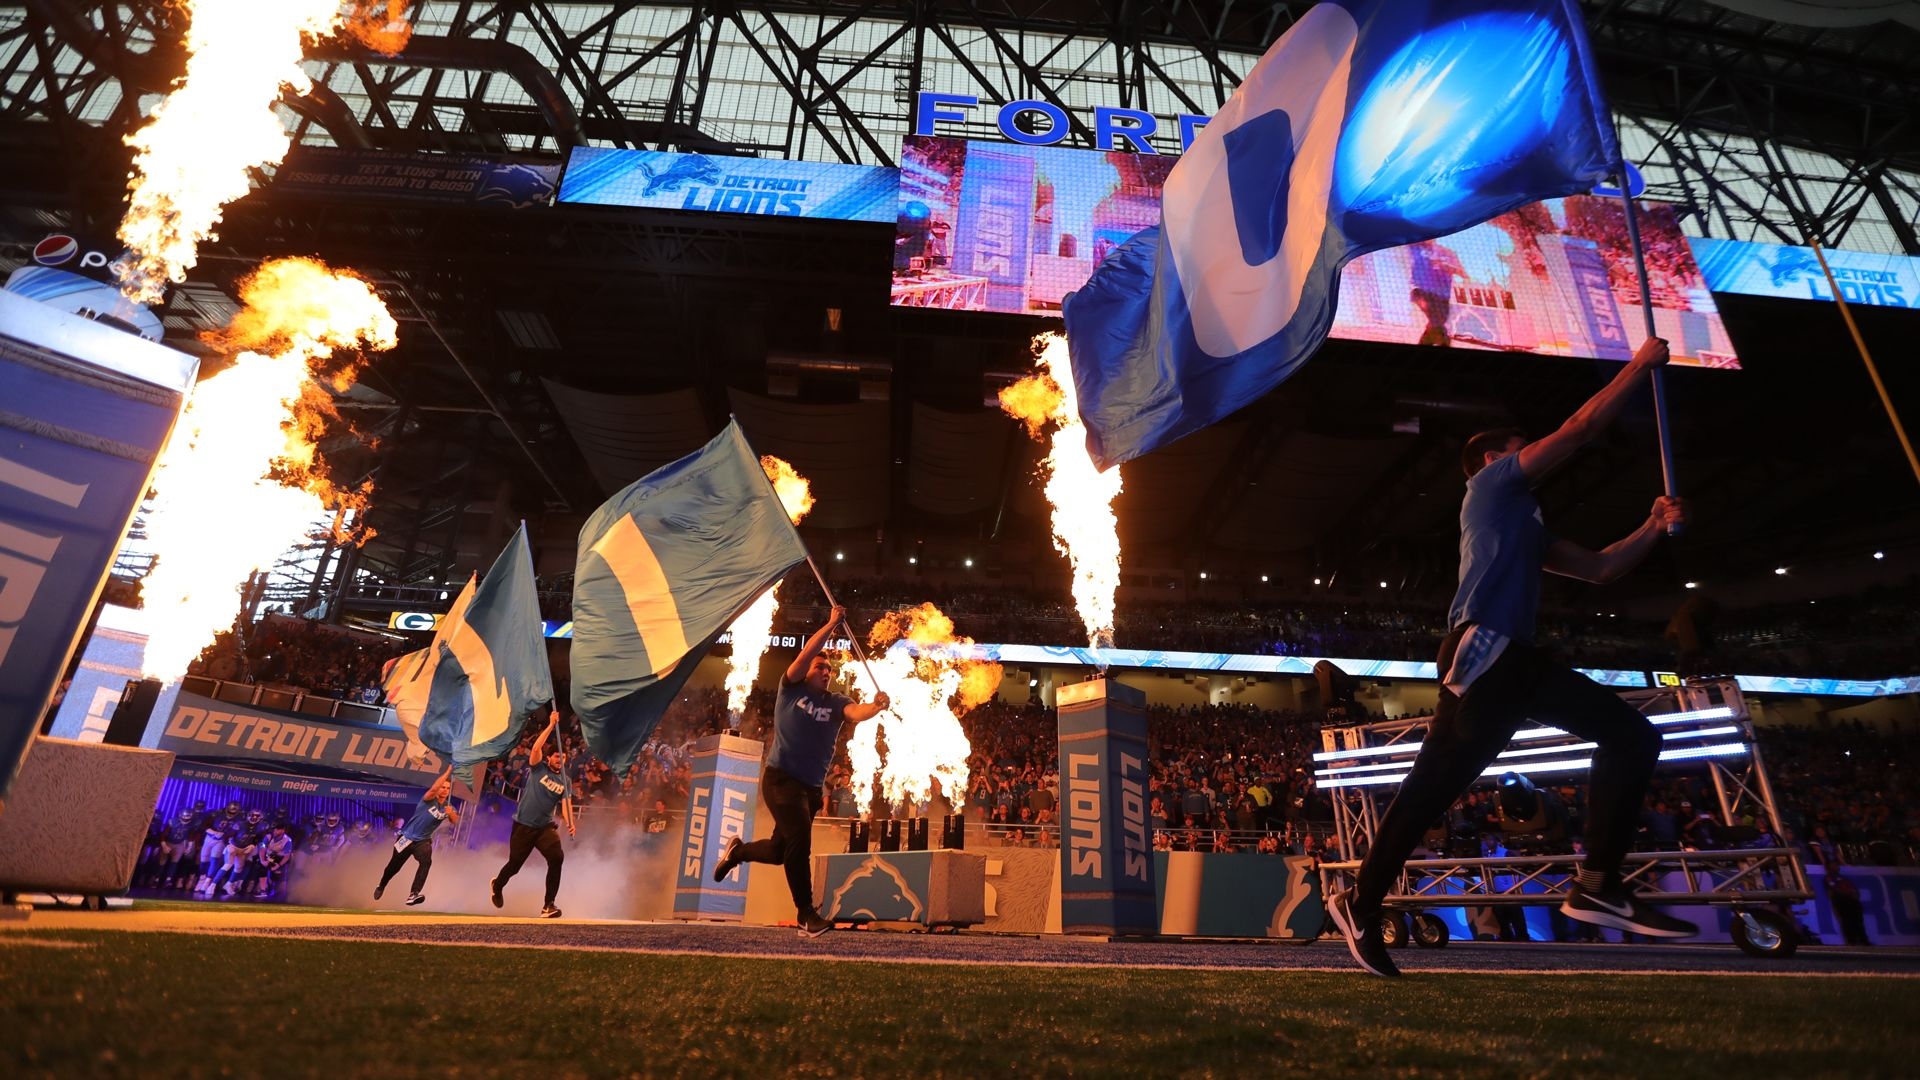 Detroit Lions introductions during a NFL football game against the Green Bay Packers on Sunday, Oct. 7, 2018 in Detroit. (Detroit Lions via AP).